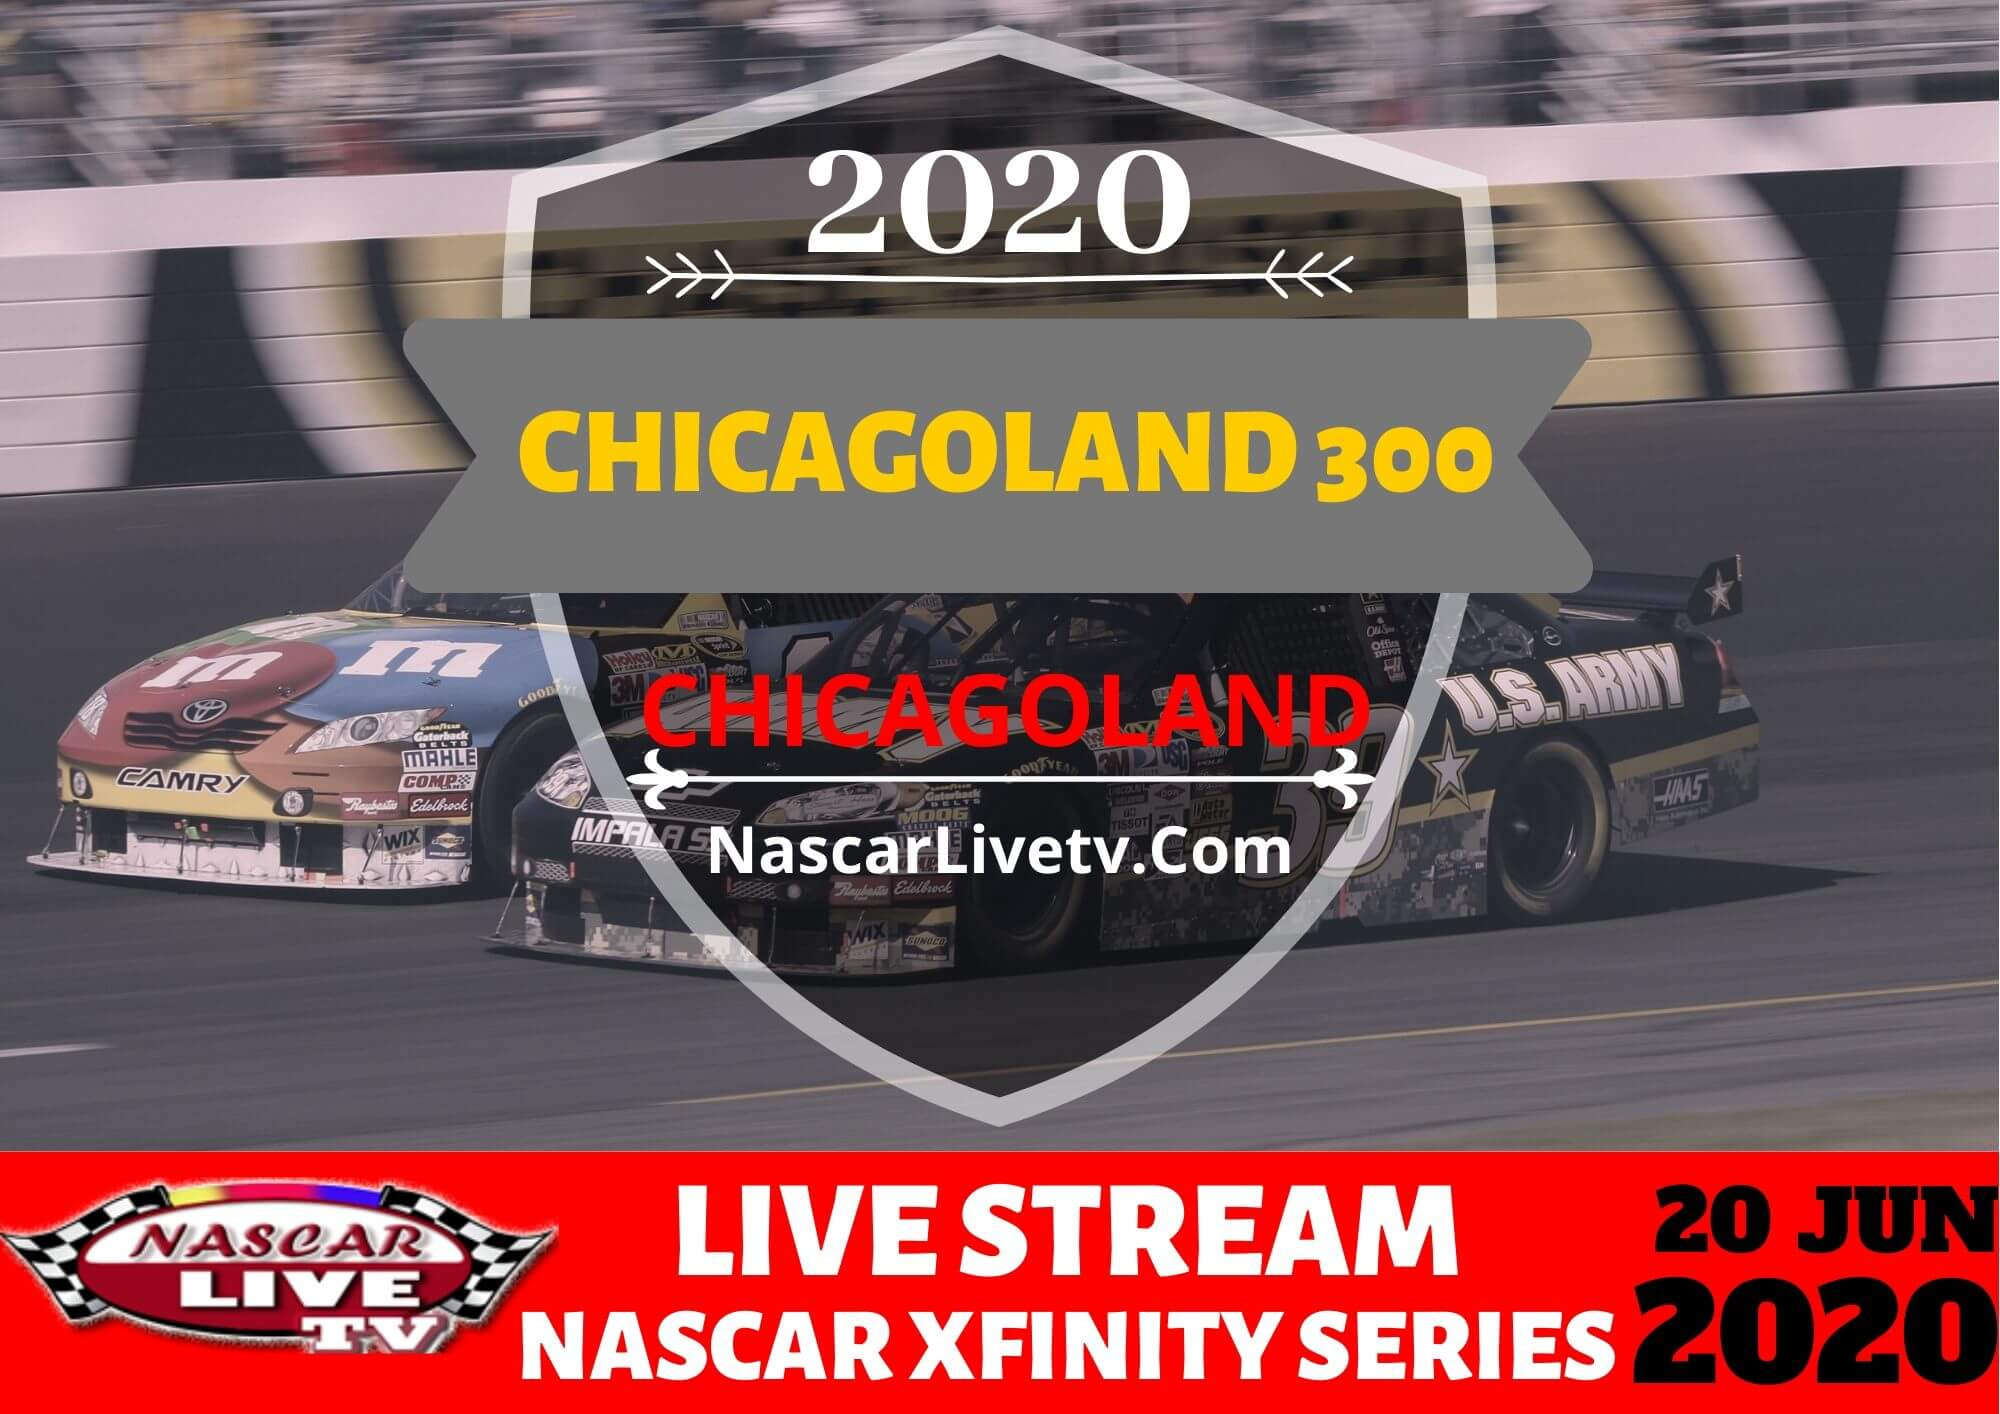 Watch Chicagoland 300 Live